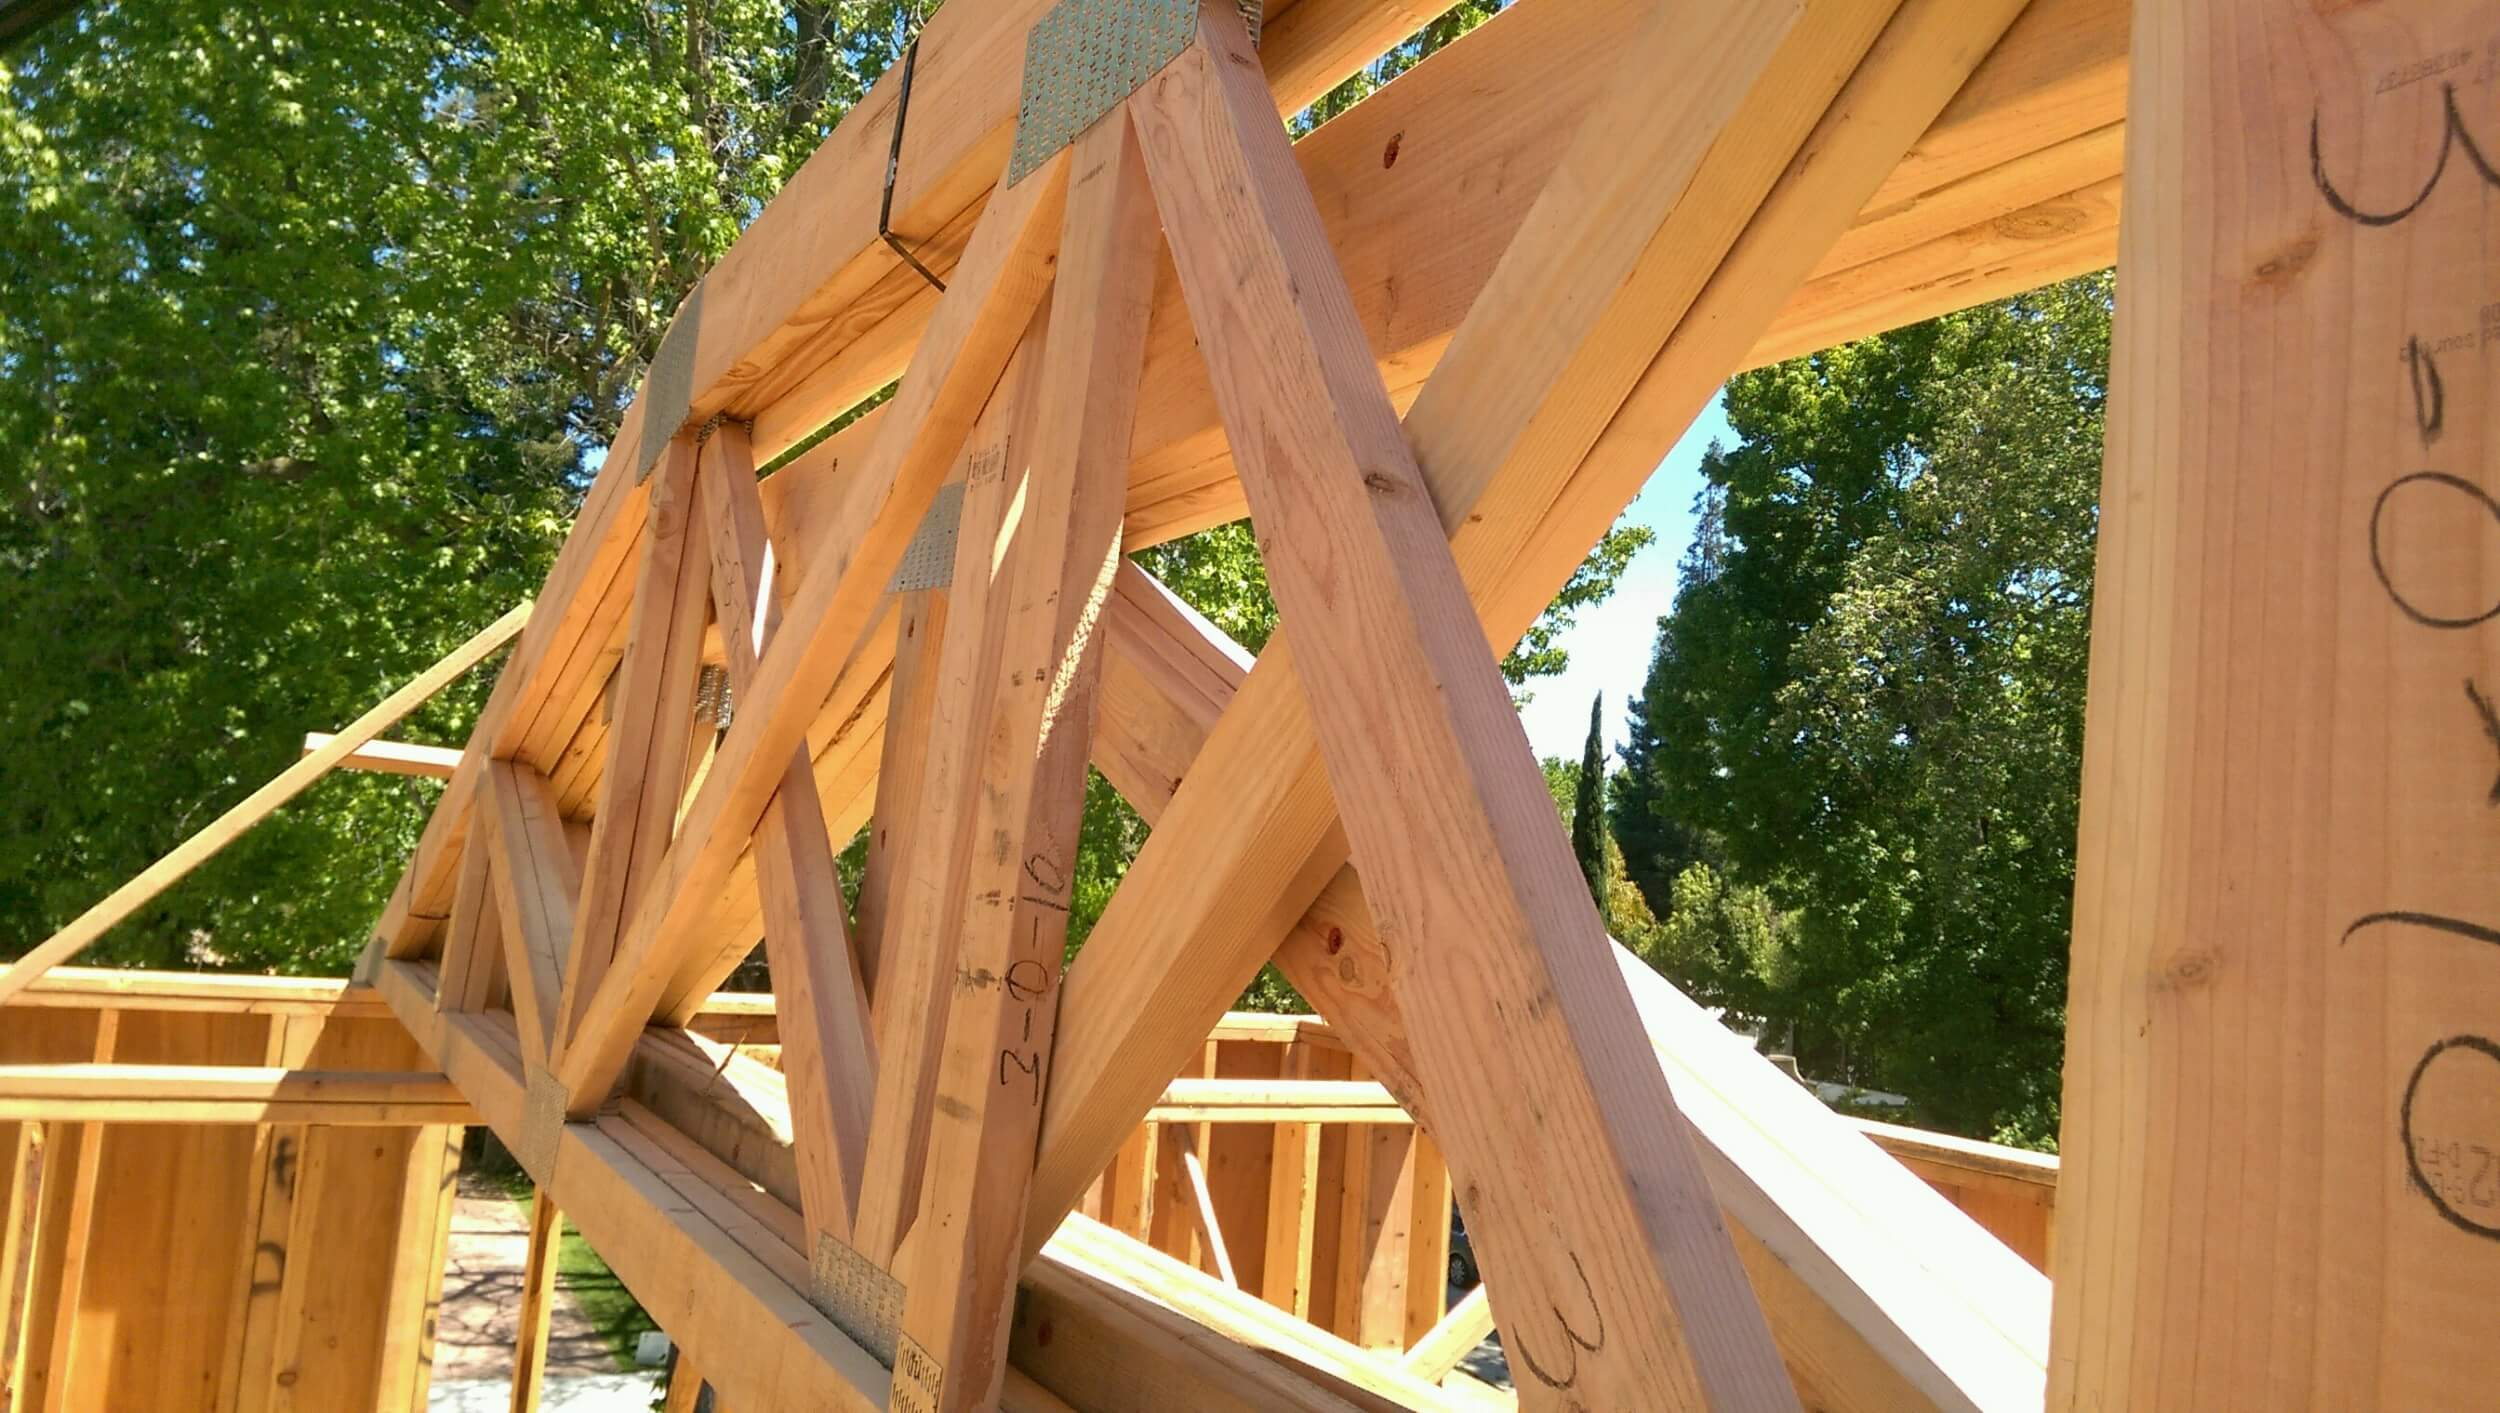 Wooden truss construction with metal truss plates